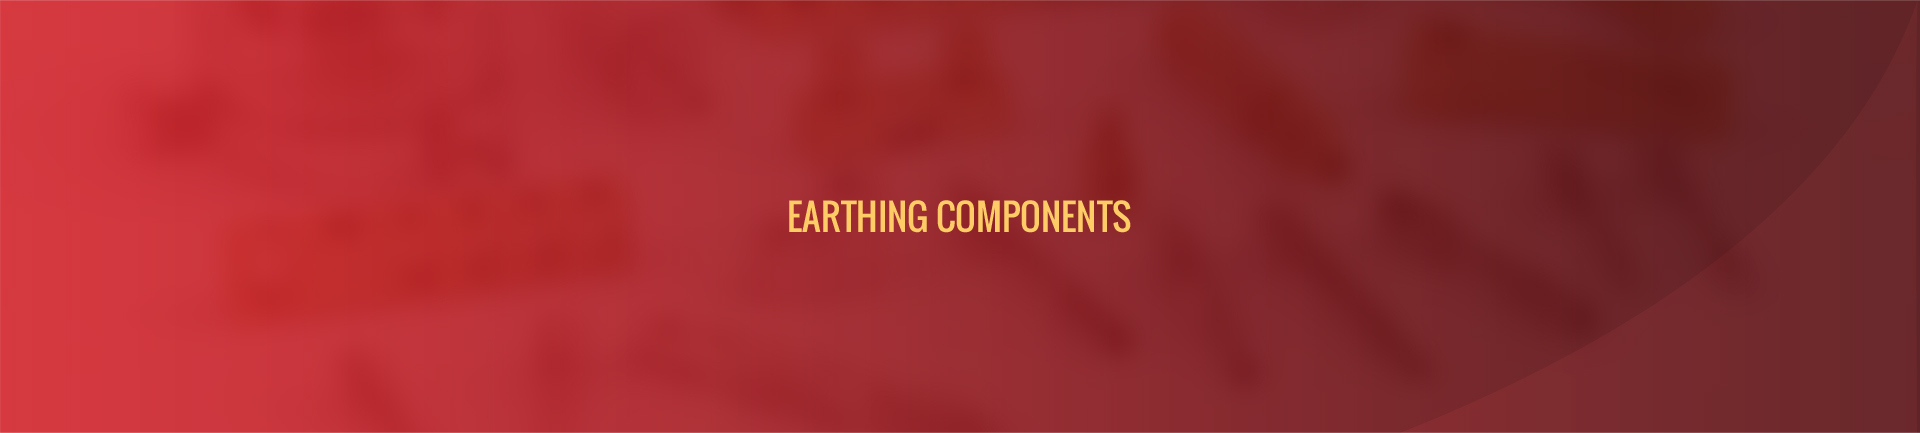 earthing-components-banner